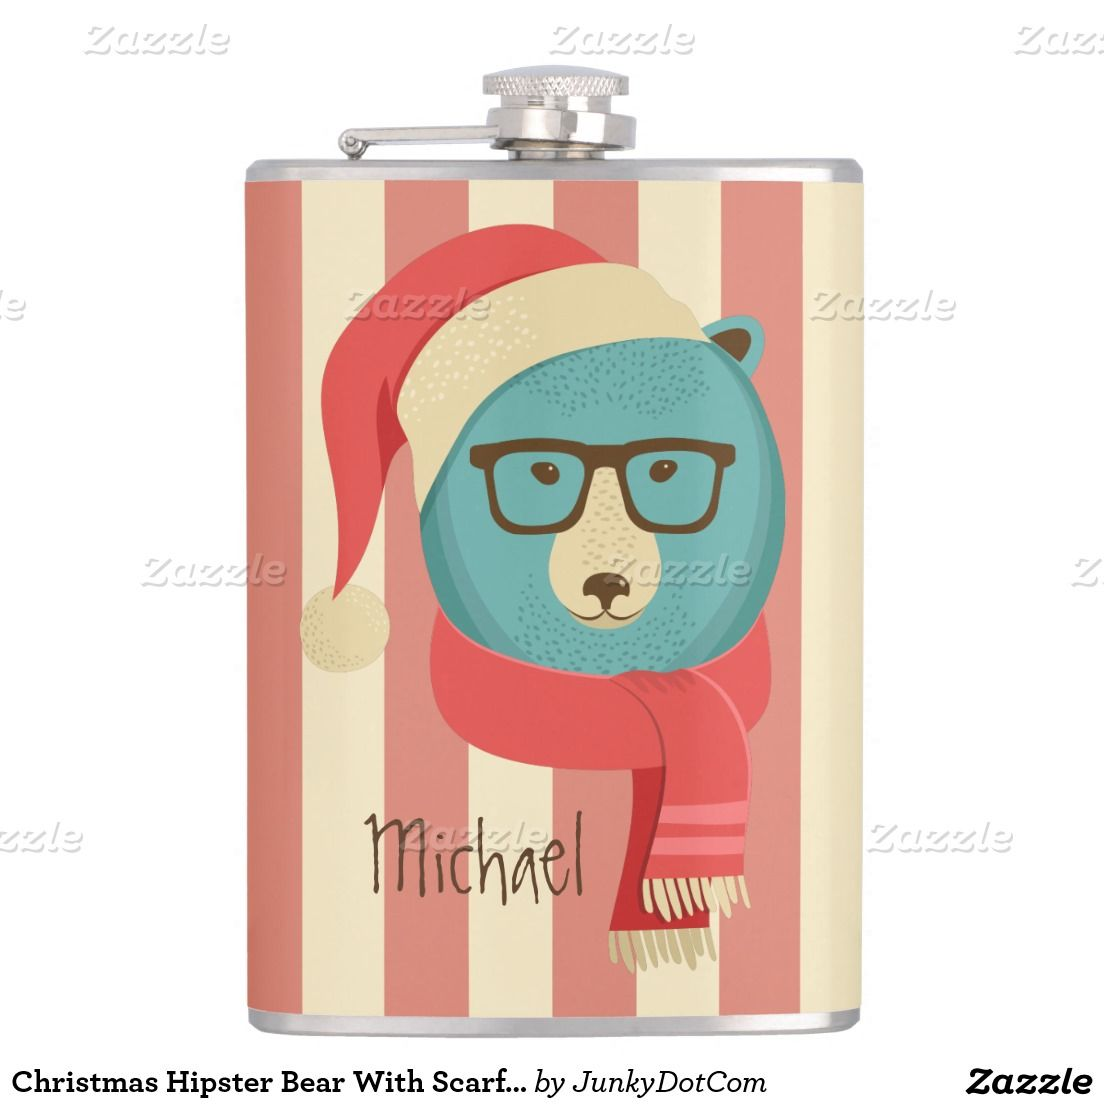 Christmas Hipster Bear With Scarf Illustration Flasks - Dec 2